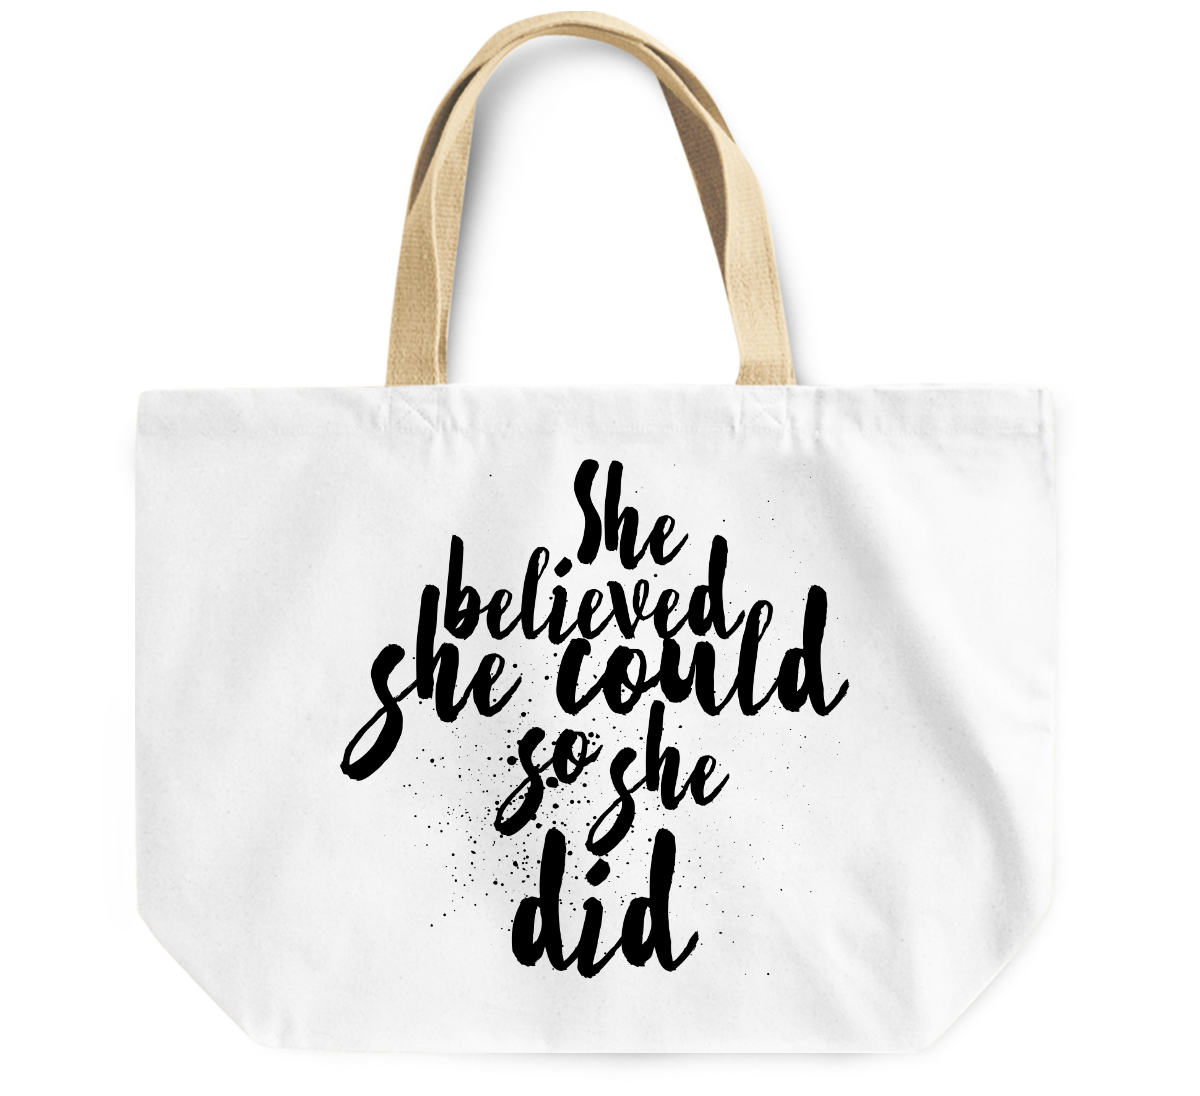 Tote Bag She believed she could so she did women bag By Loud Universe